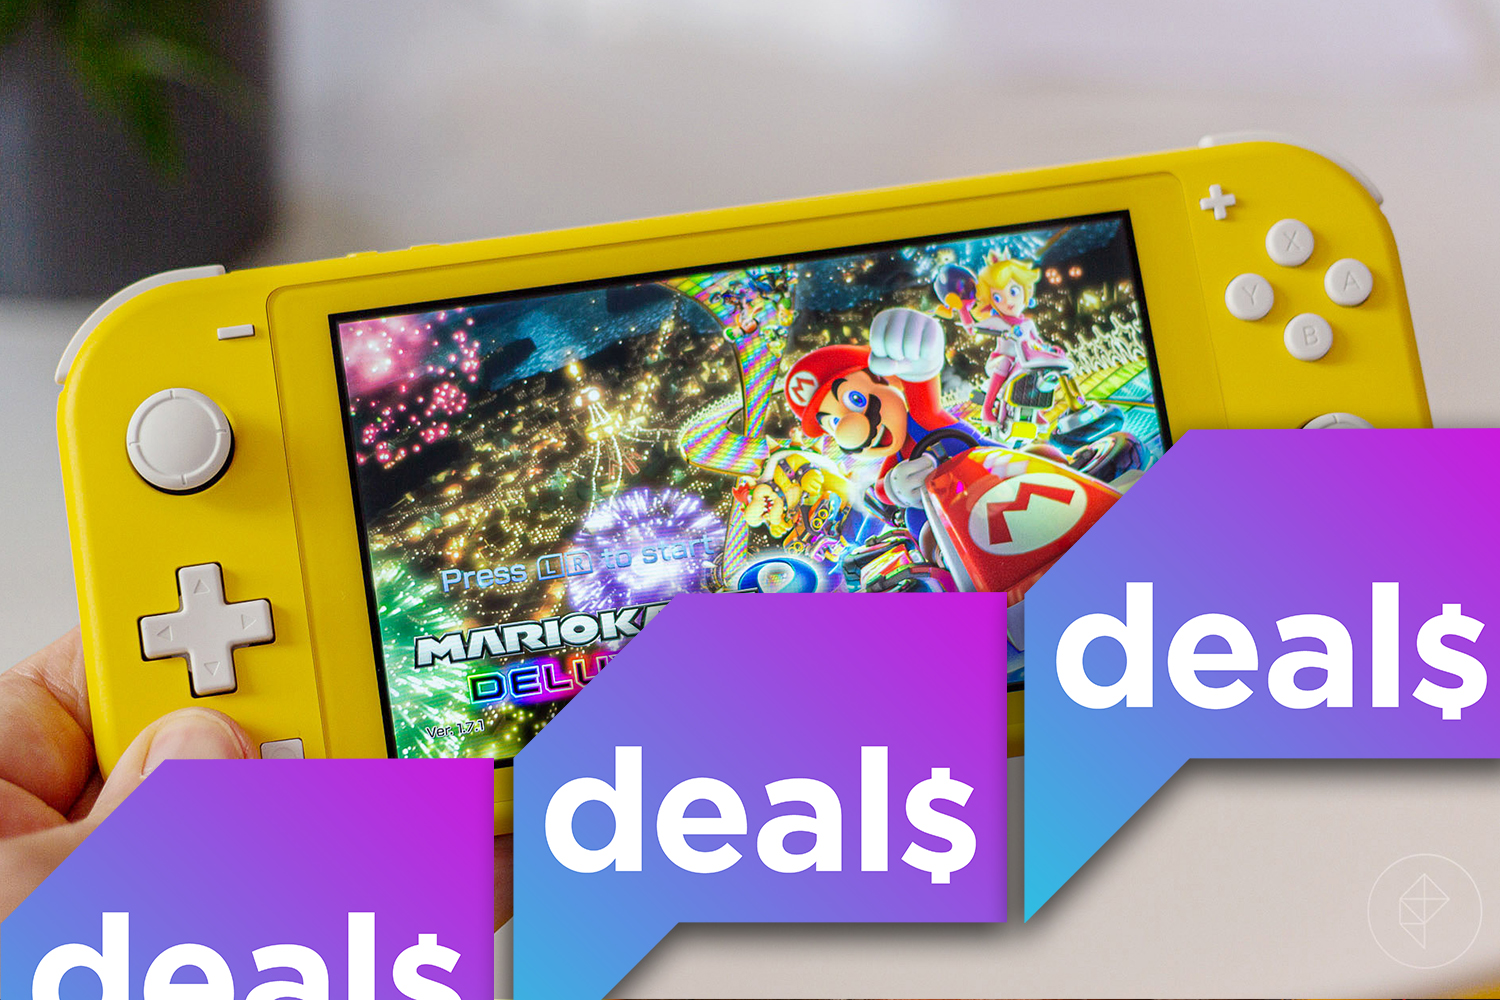 A hand holding a yellow Switch Lite overlaid with the Polygon Deals logo